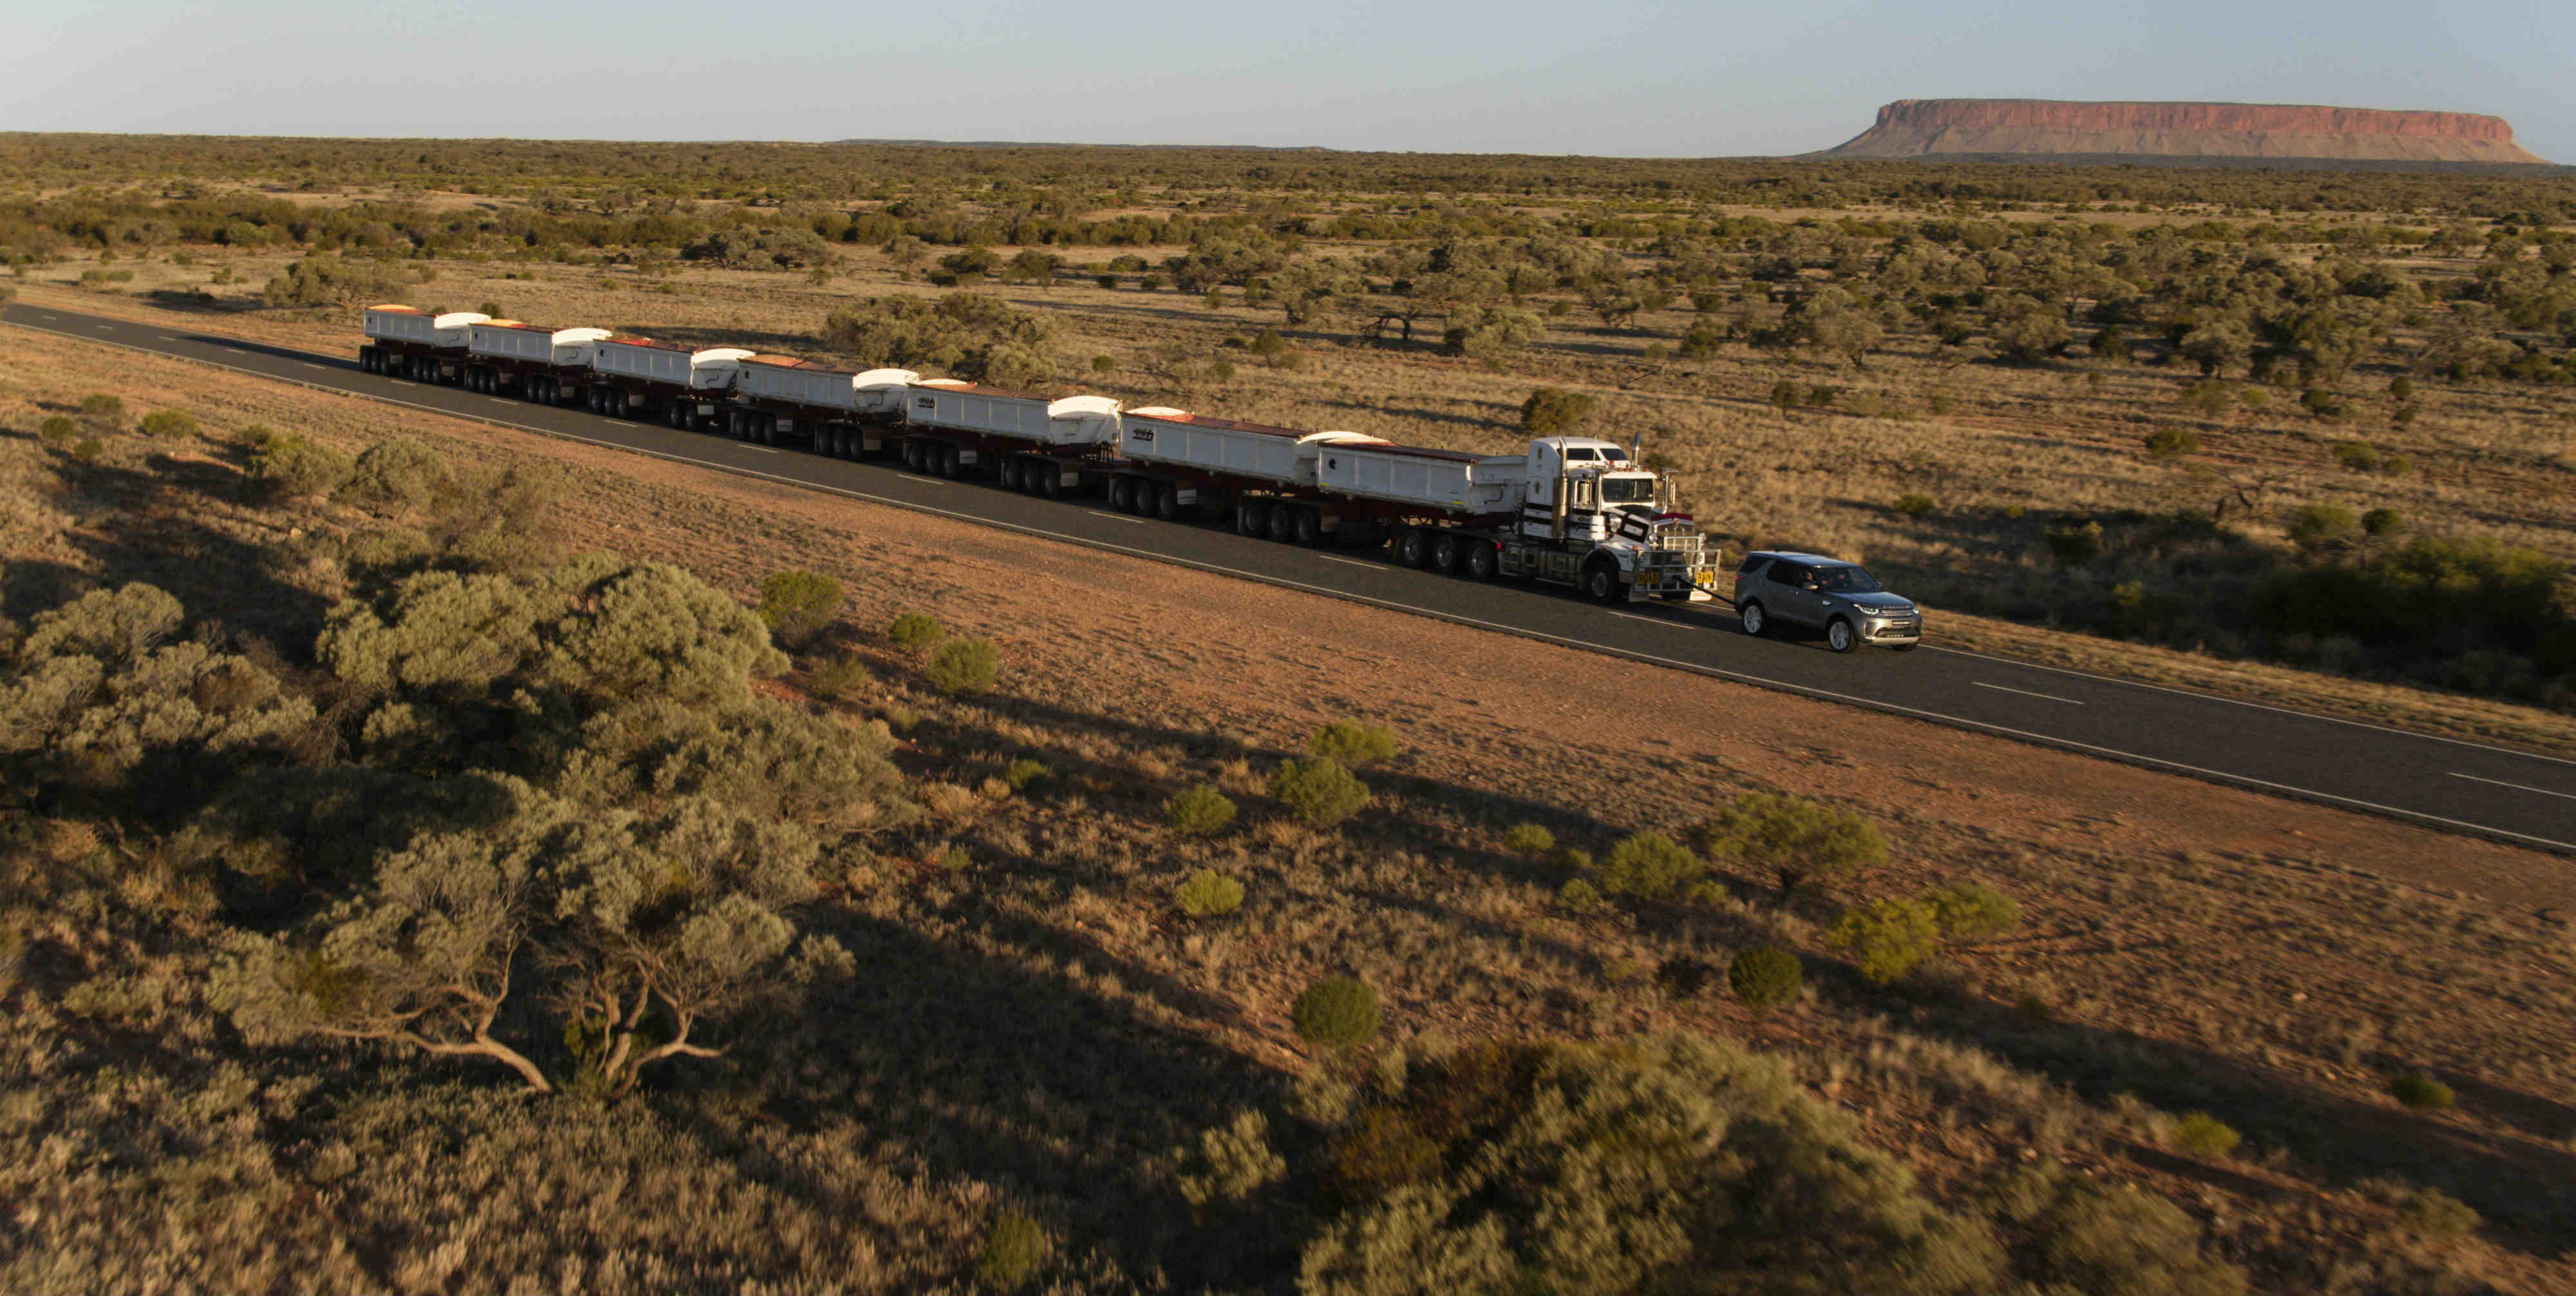 land rover discovery tows  tonne road train  australian outback torque